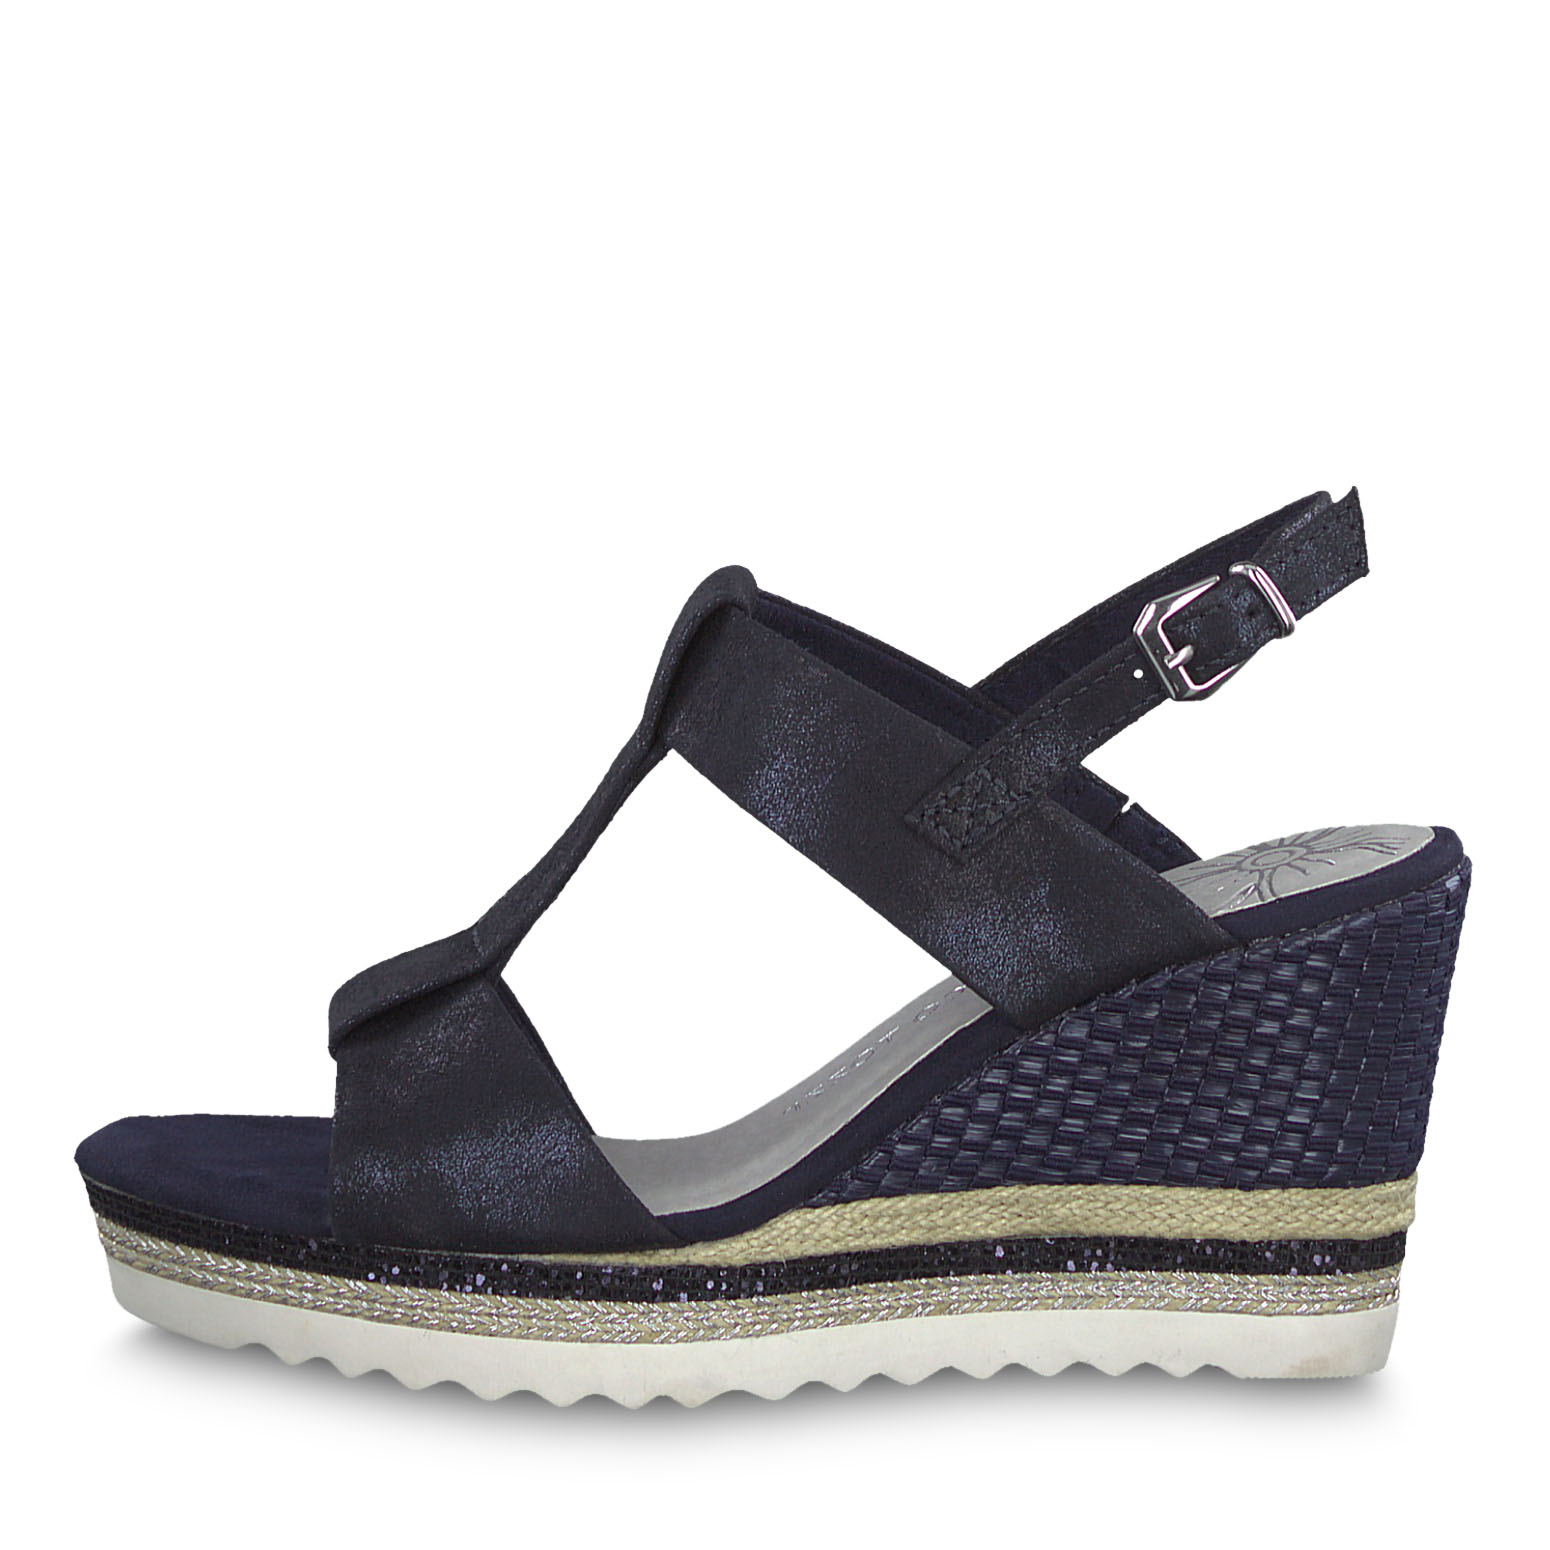 Heeled sandal - blue, NAVY METALLIC, hi-res